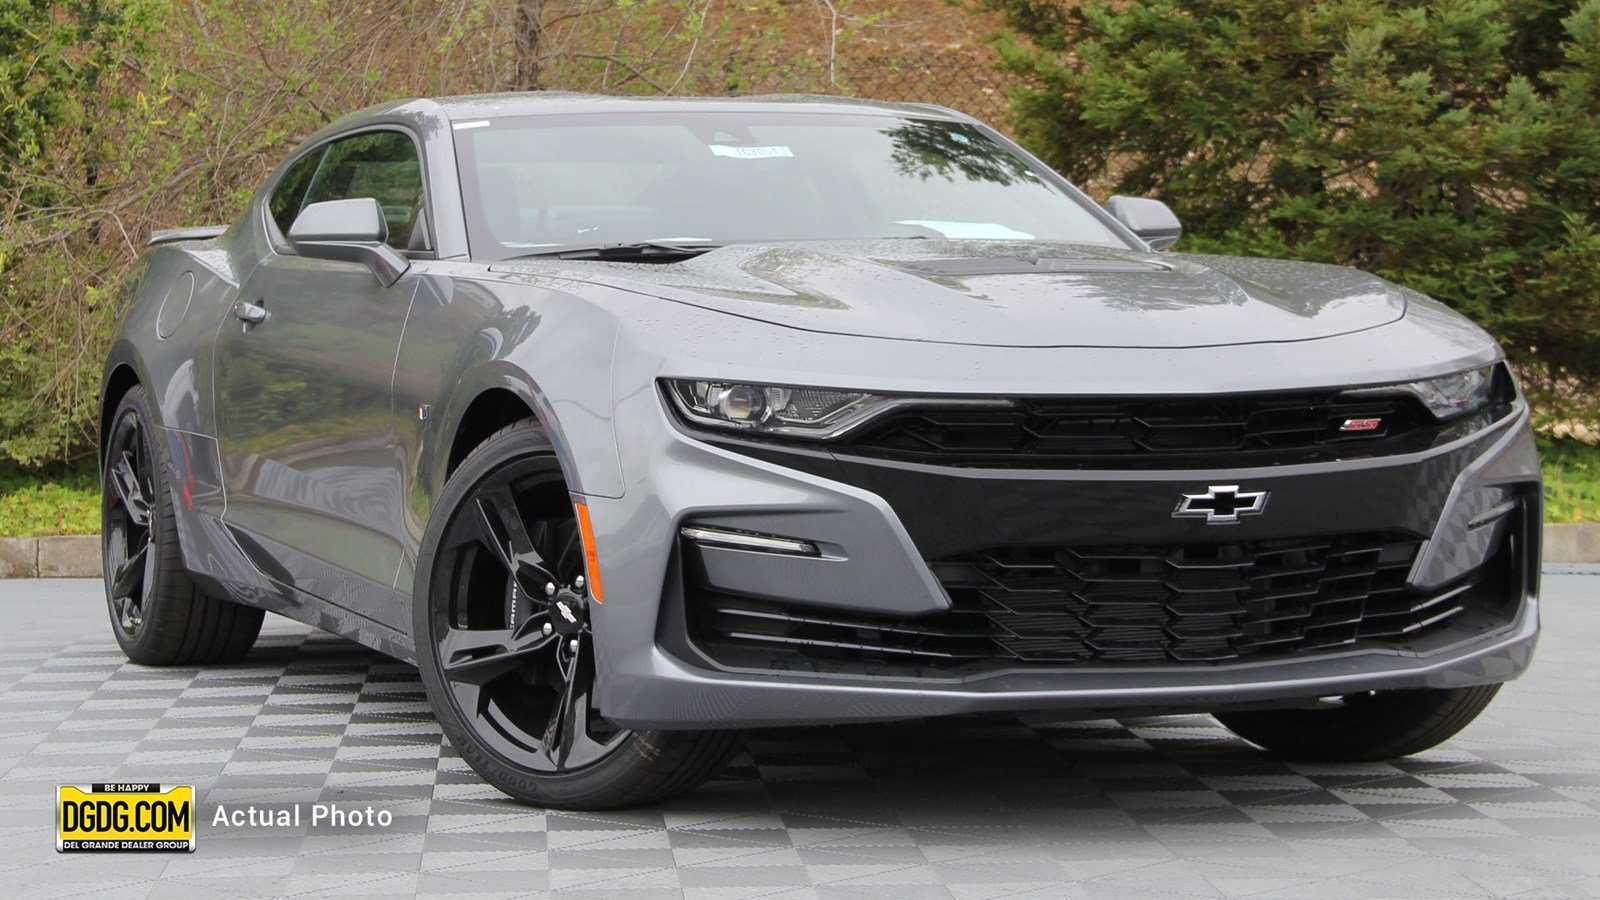 51 The Best 2019 Chevrolet Camaro Price And Release Date